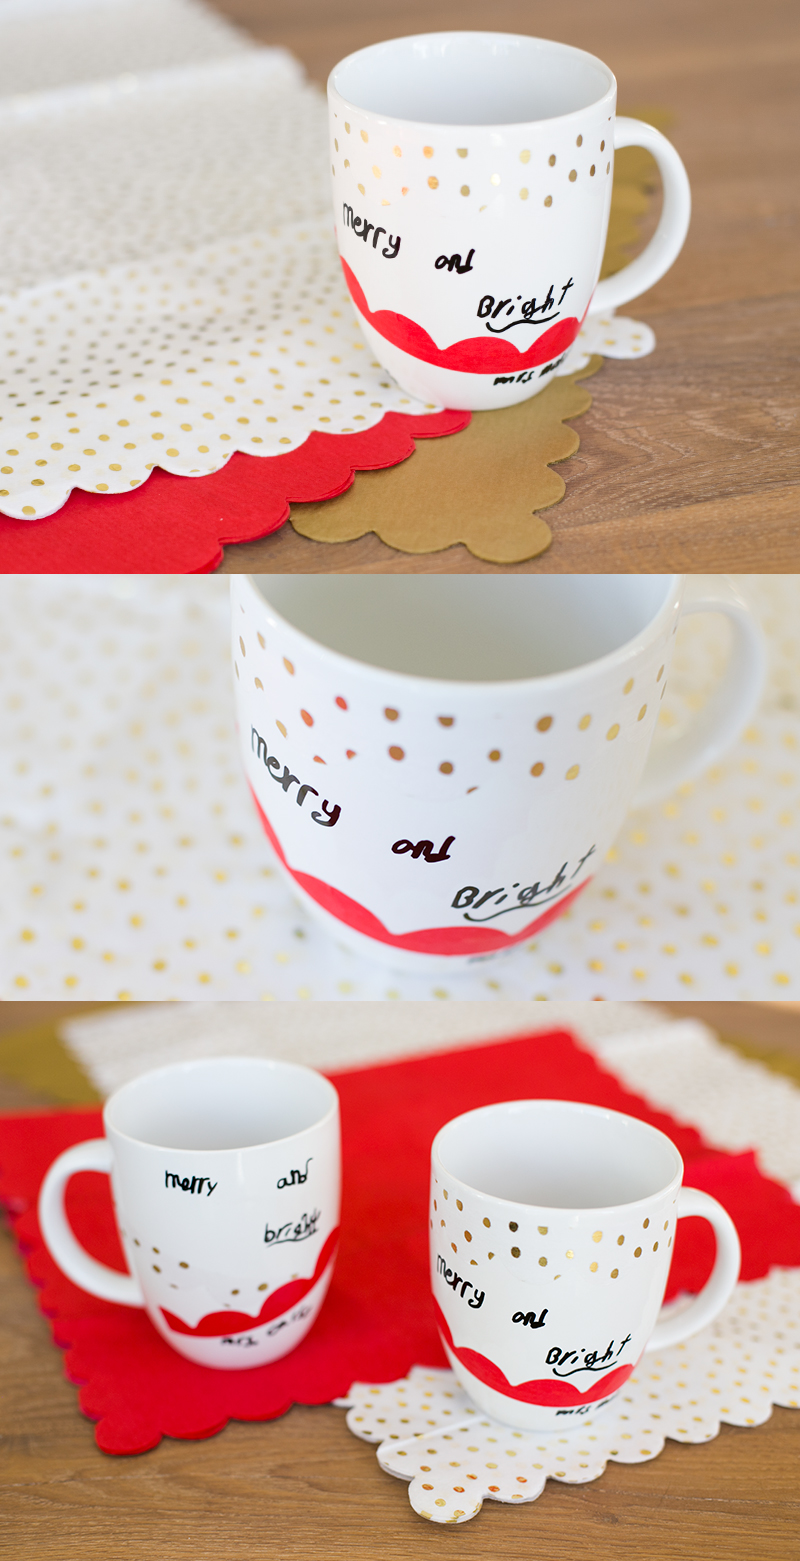 Easy diy for kids: personalized mugs as gifts for teachers during the holidays